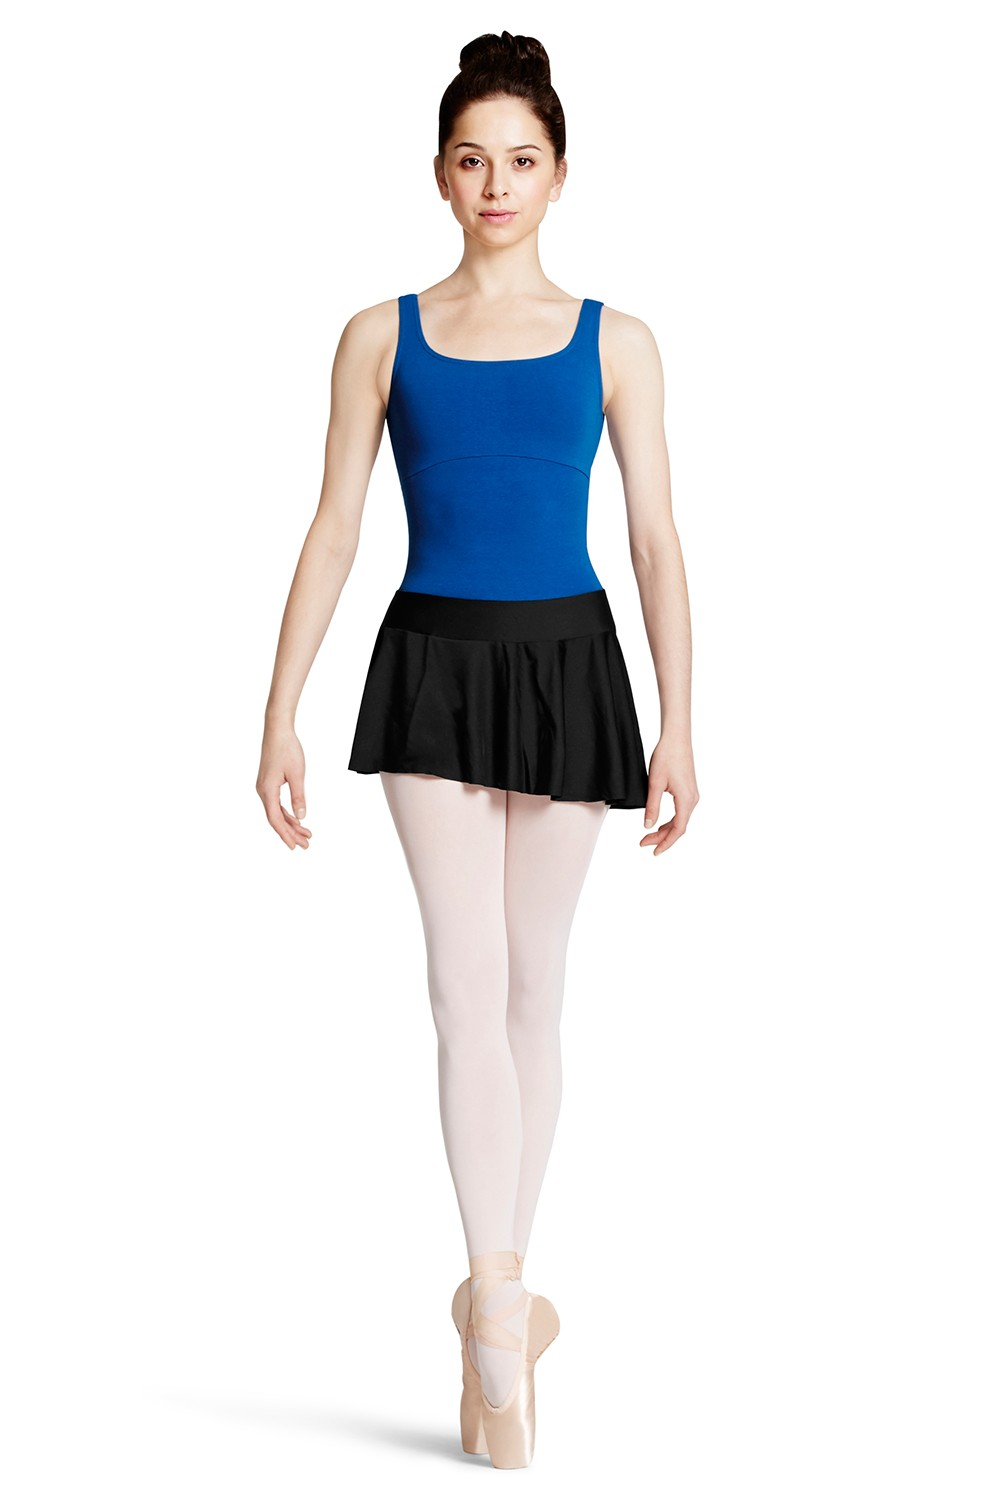 Pull On Hi Lo Skirt Women's Dance Skirts